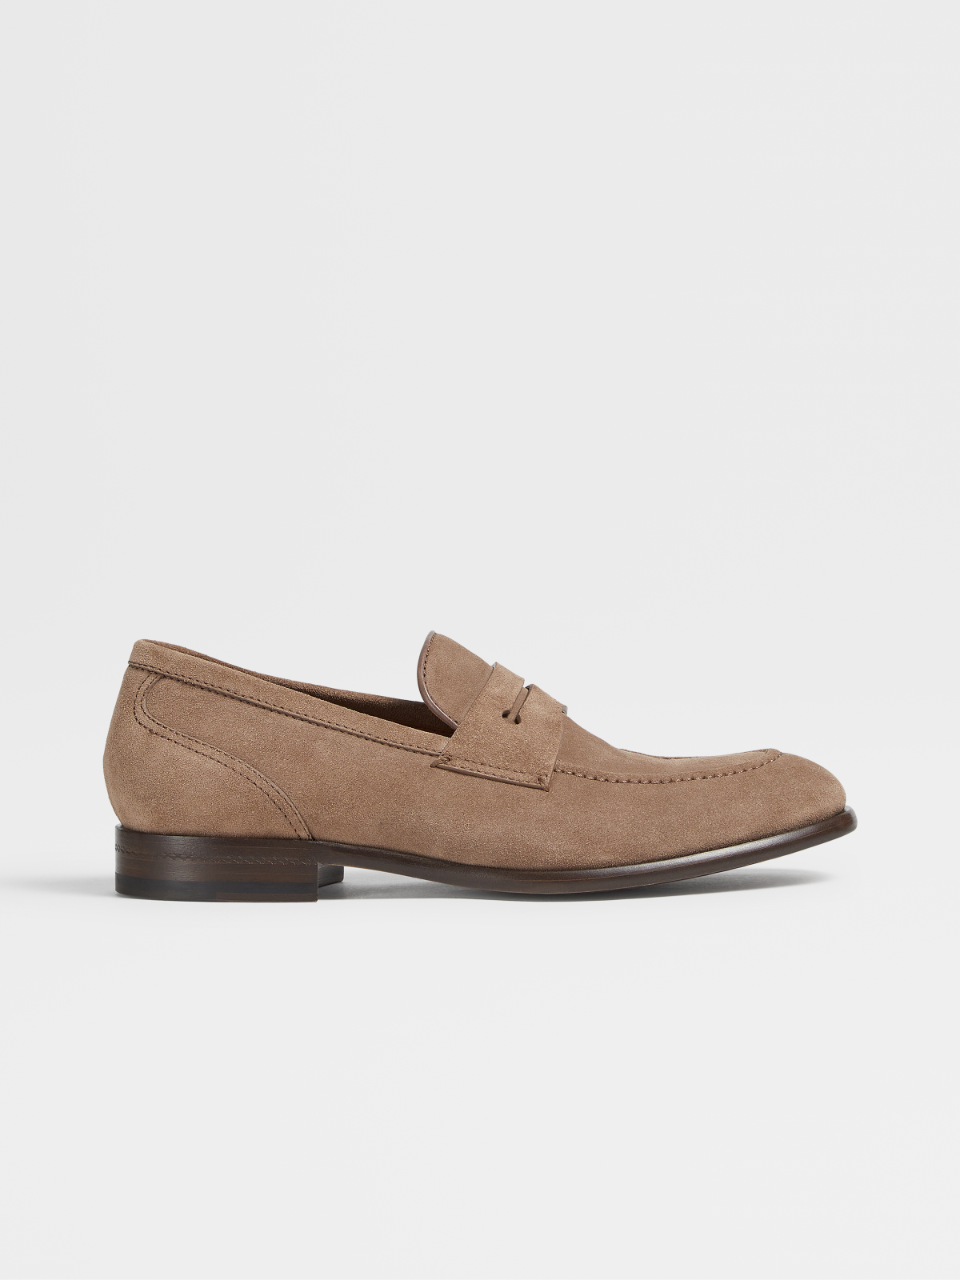 Suede Marcello Moccasin